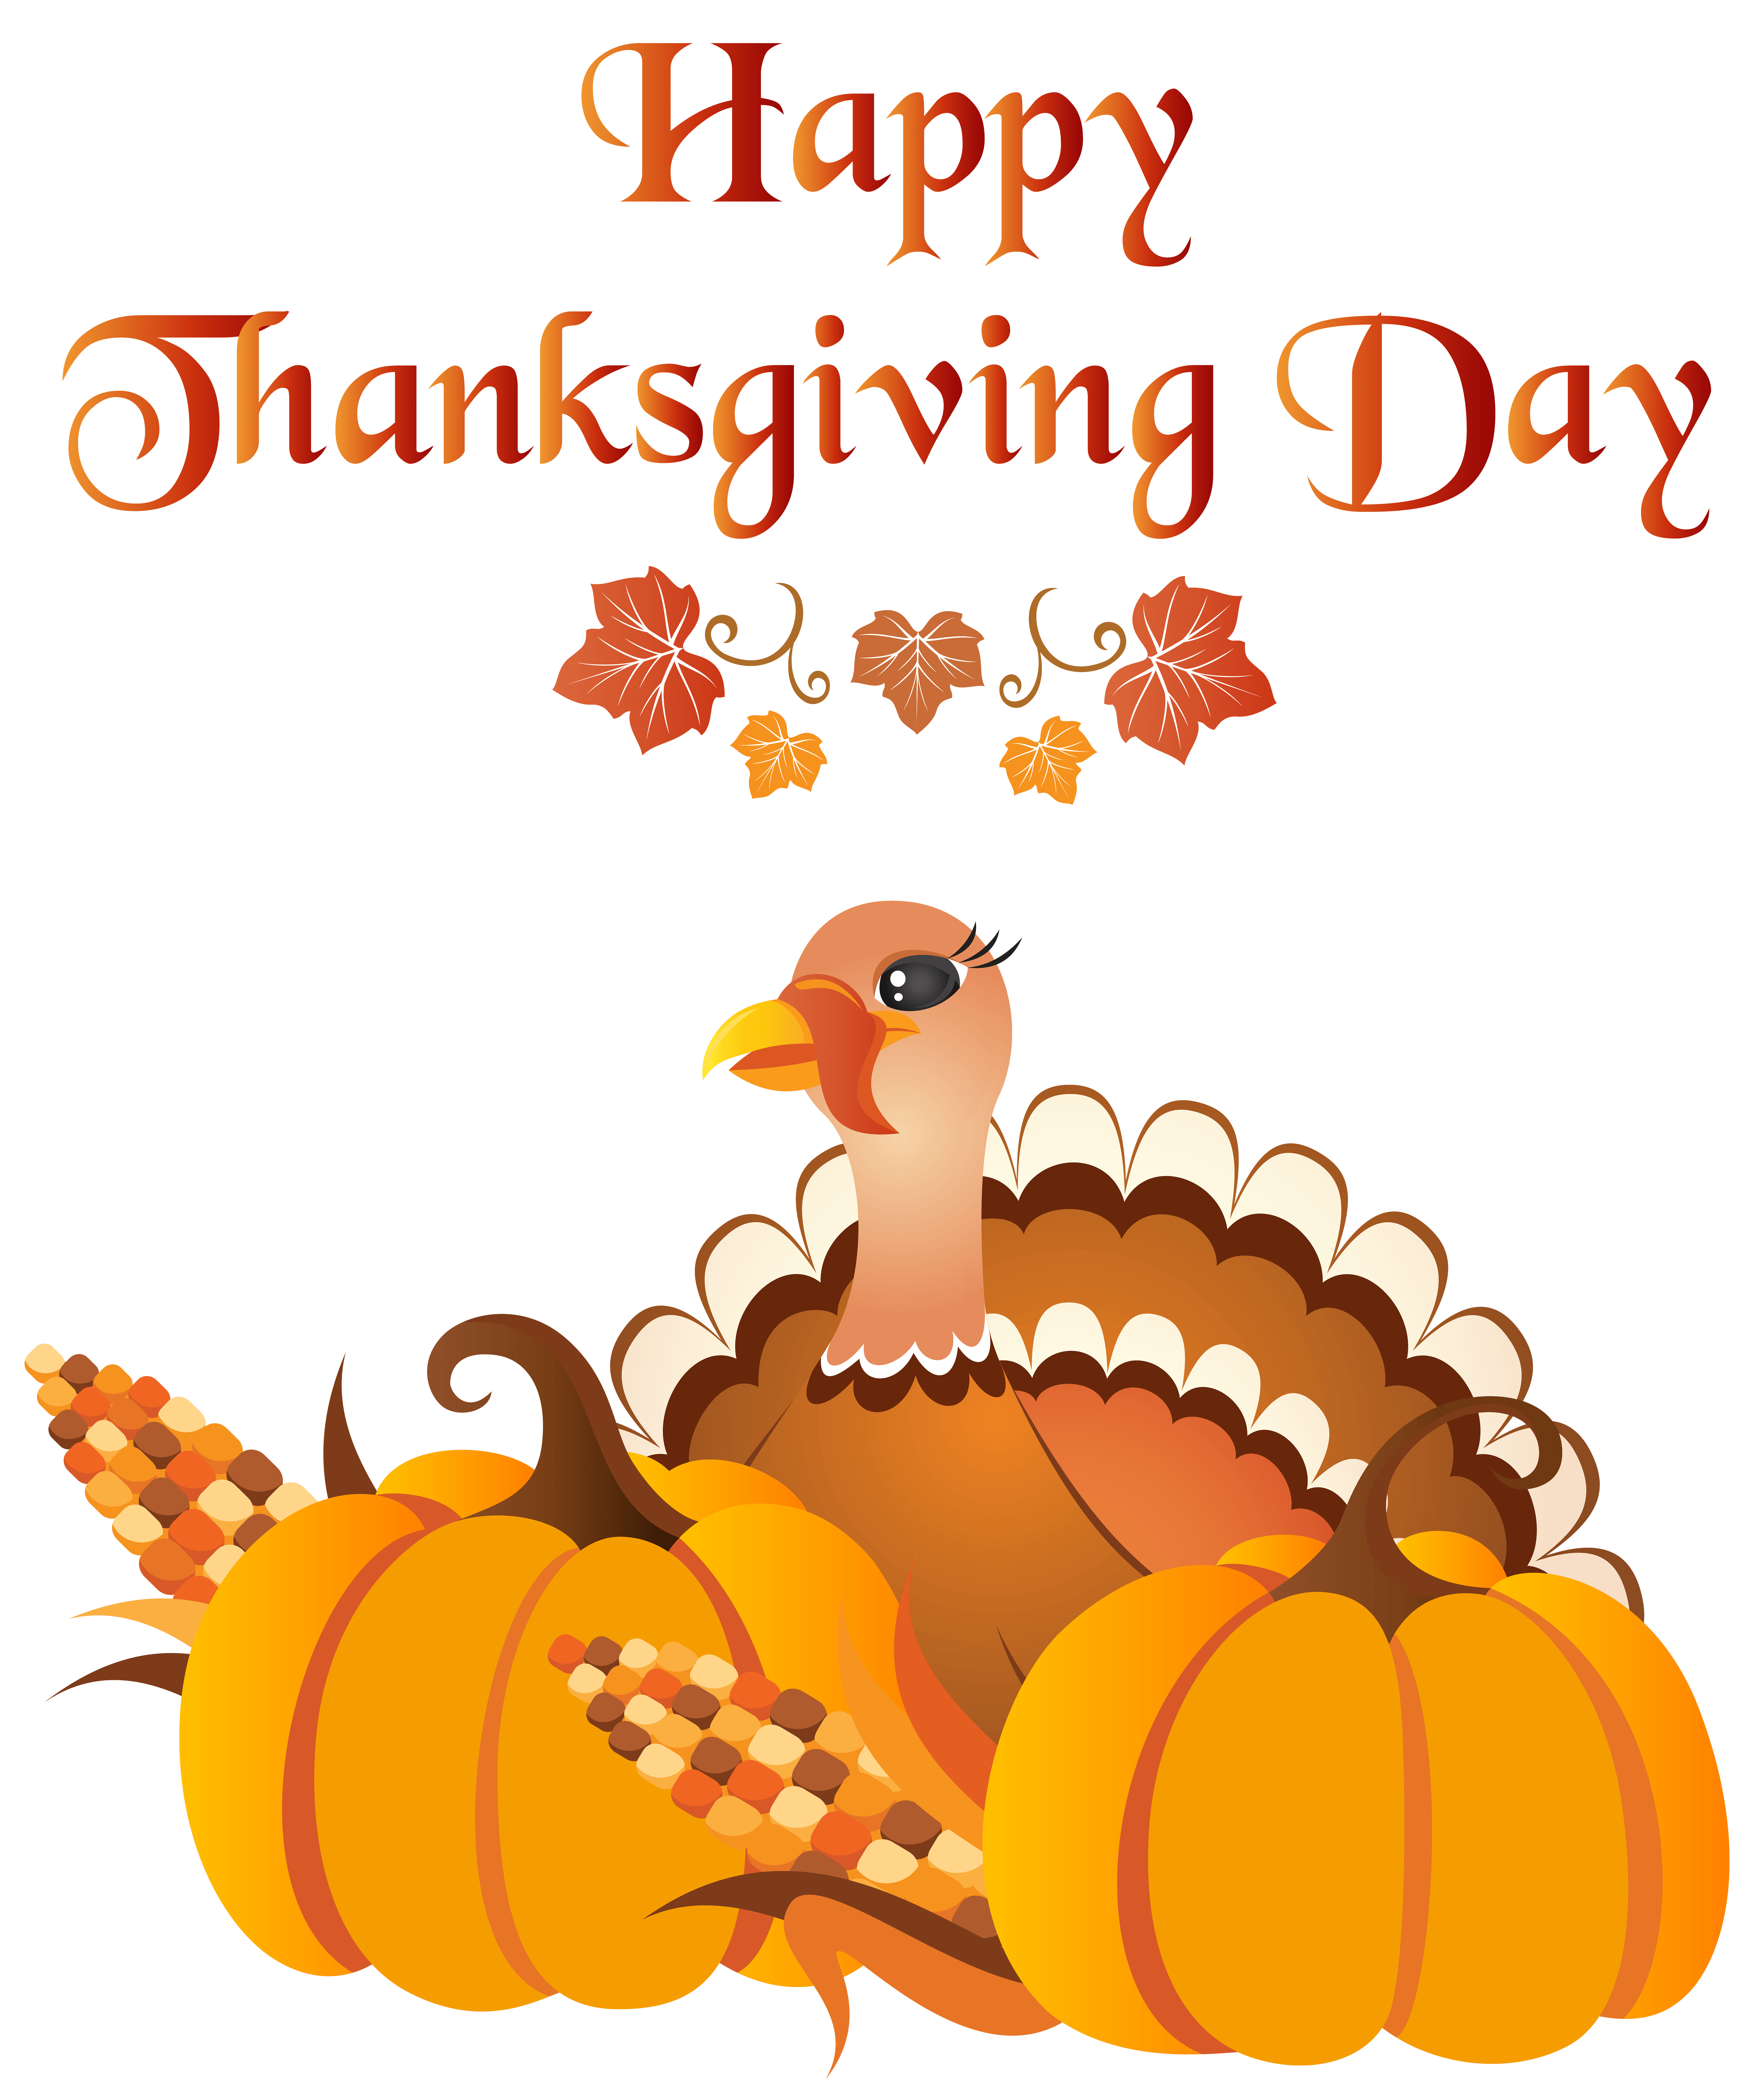 Happy Thanksgiving Day with Turkey PNG Clip Art Image